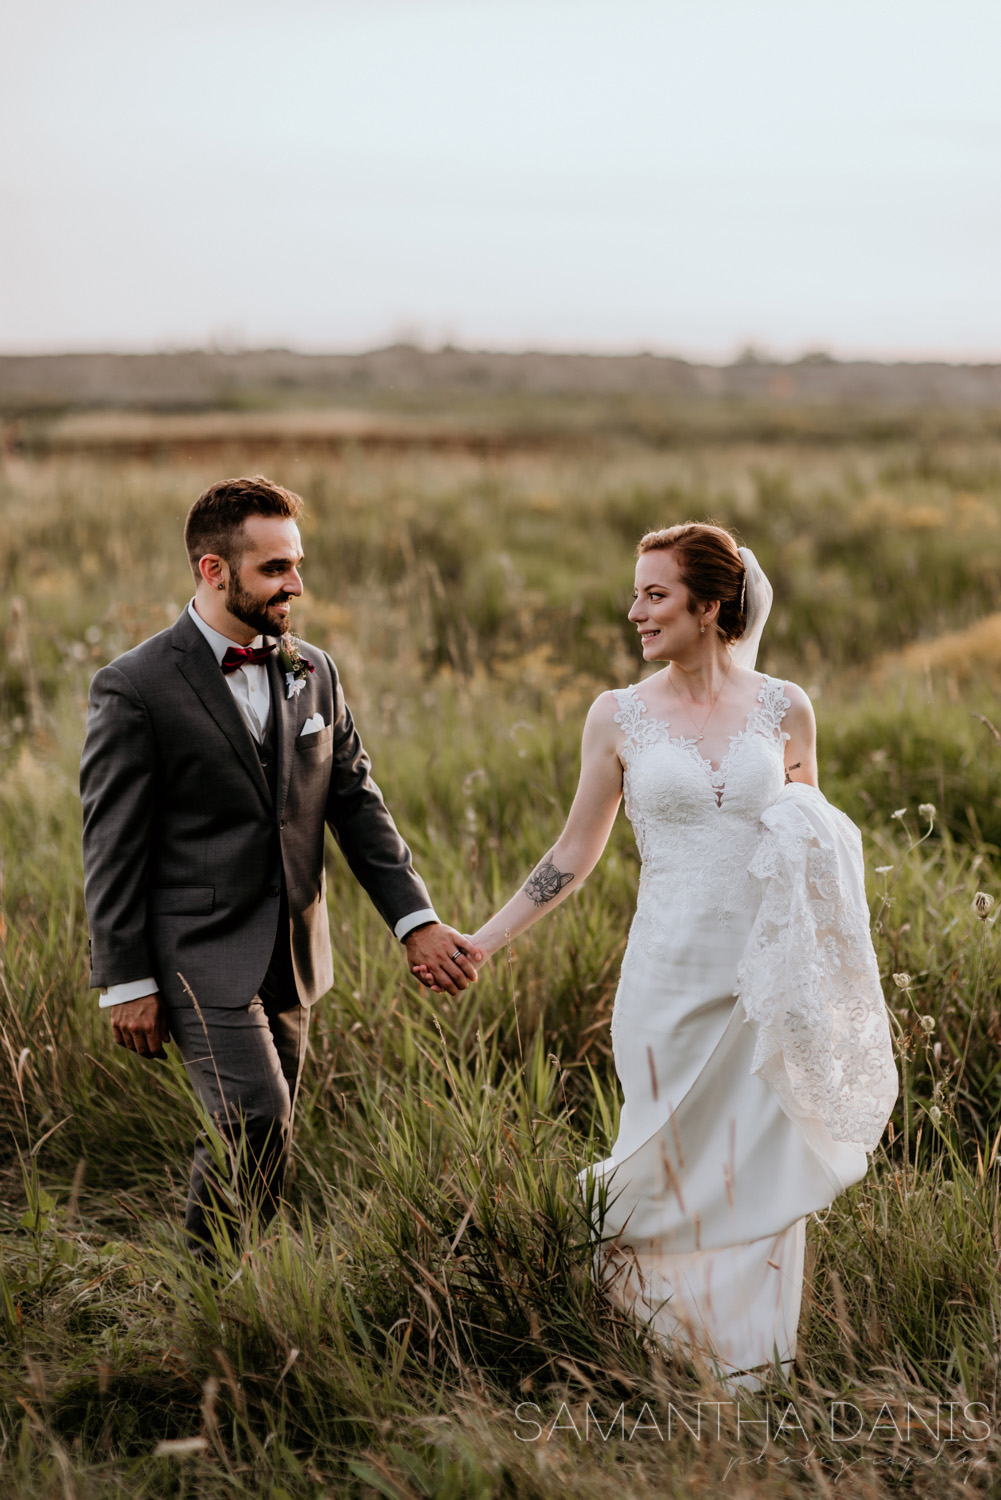 Ottawa Bride leads her new Husband through a golden field during sunset, Happiness is the goal and we got it! Samantha Danis Photography.